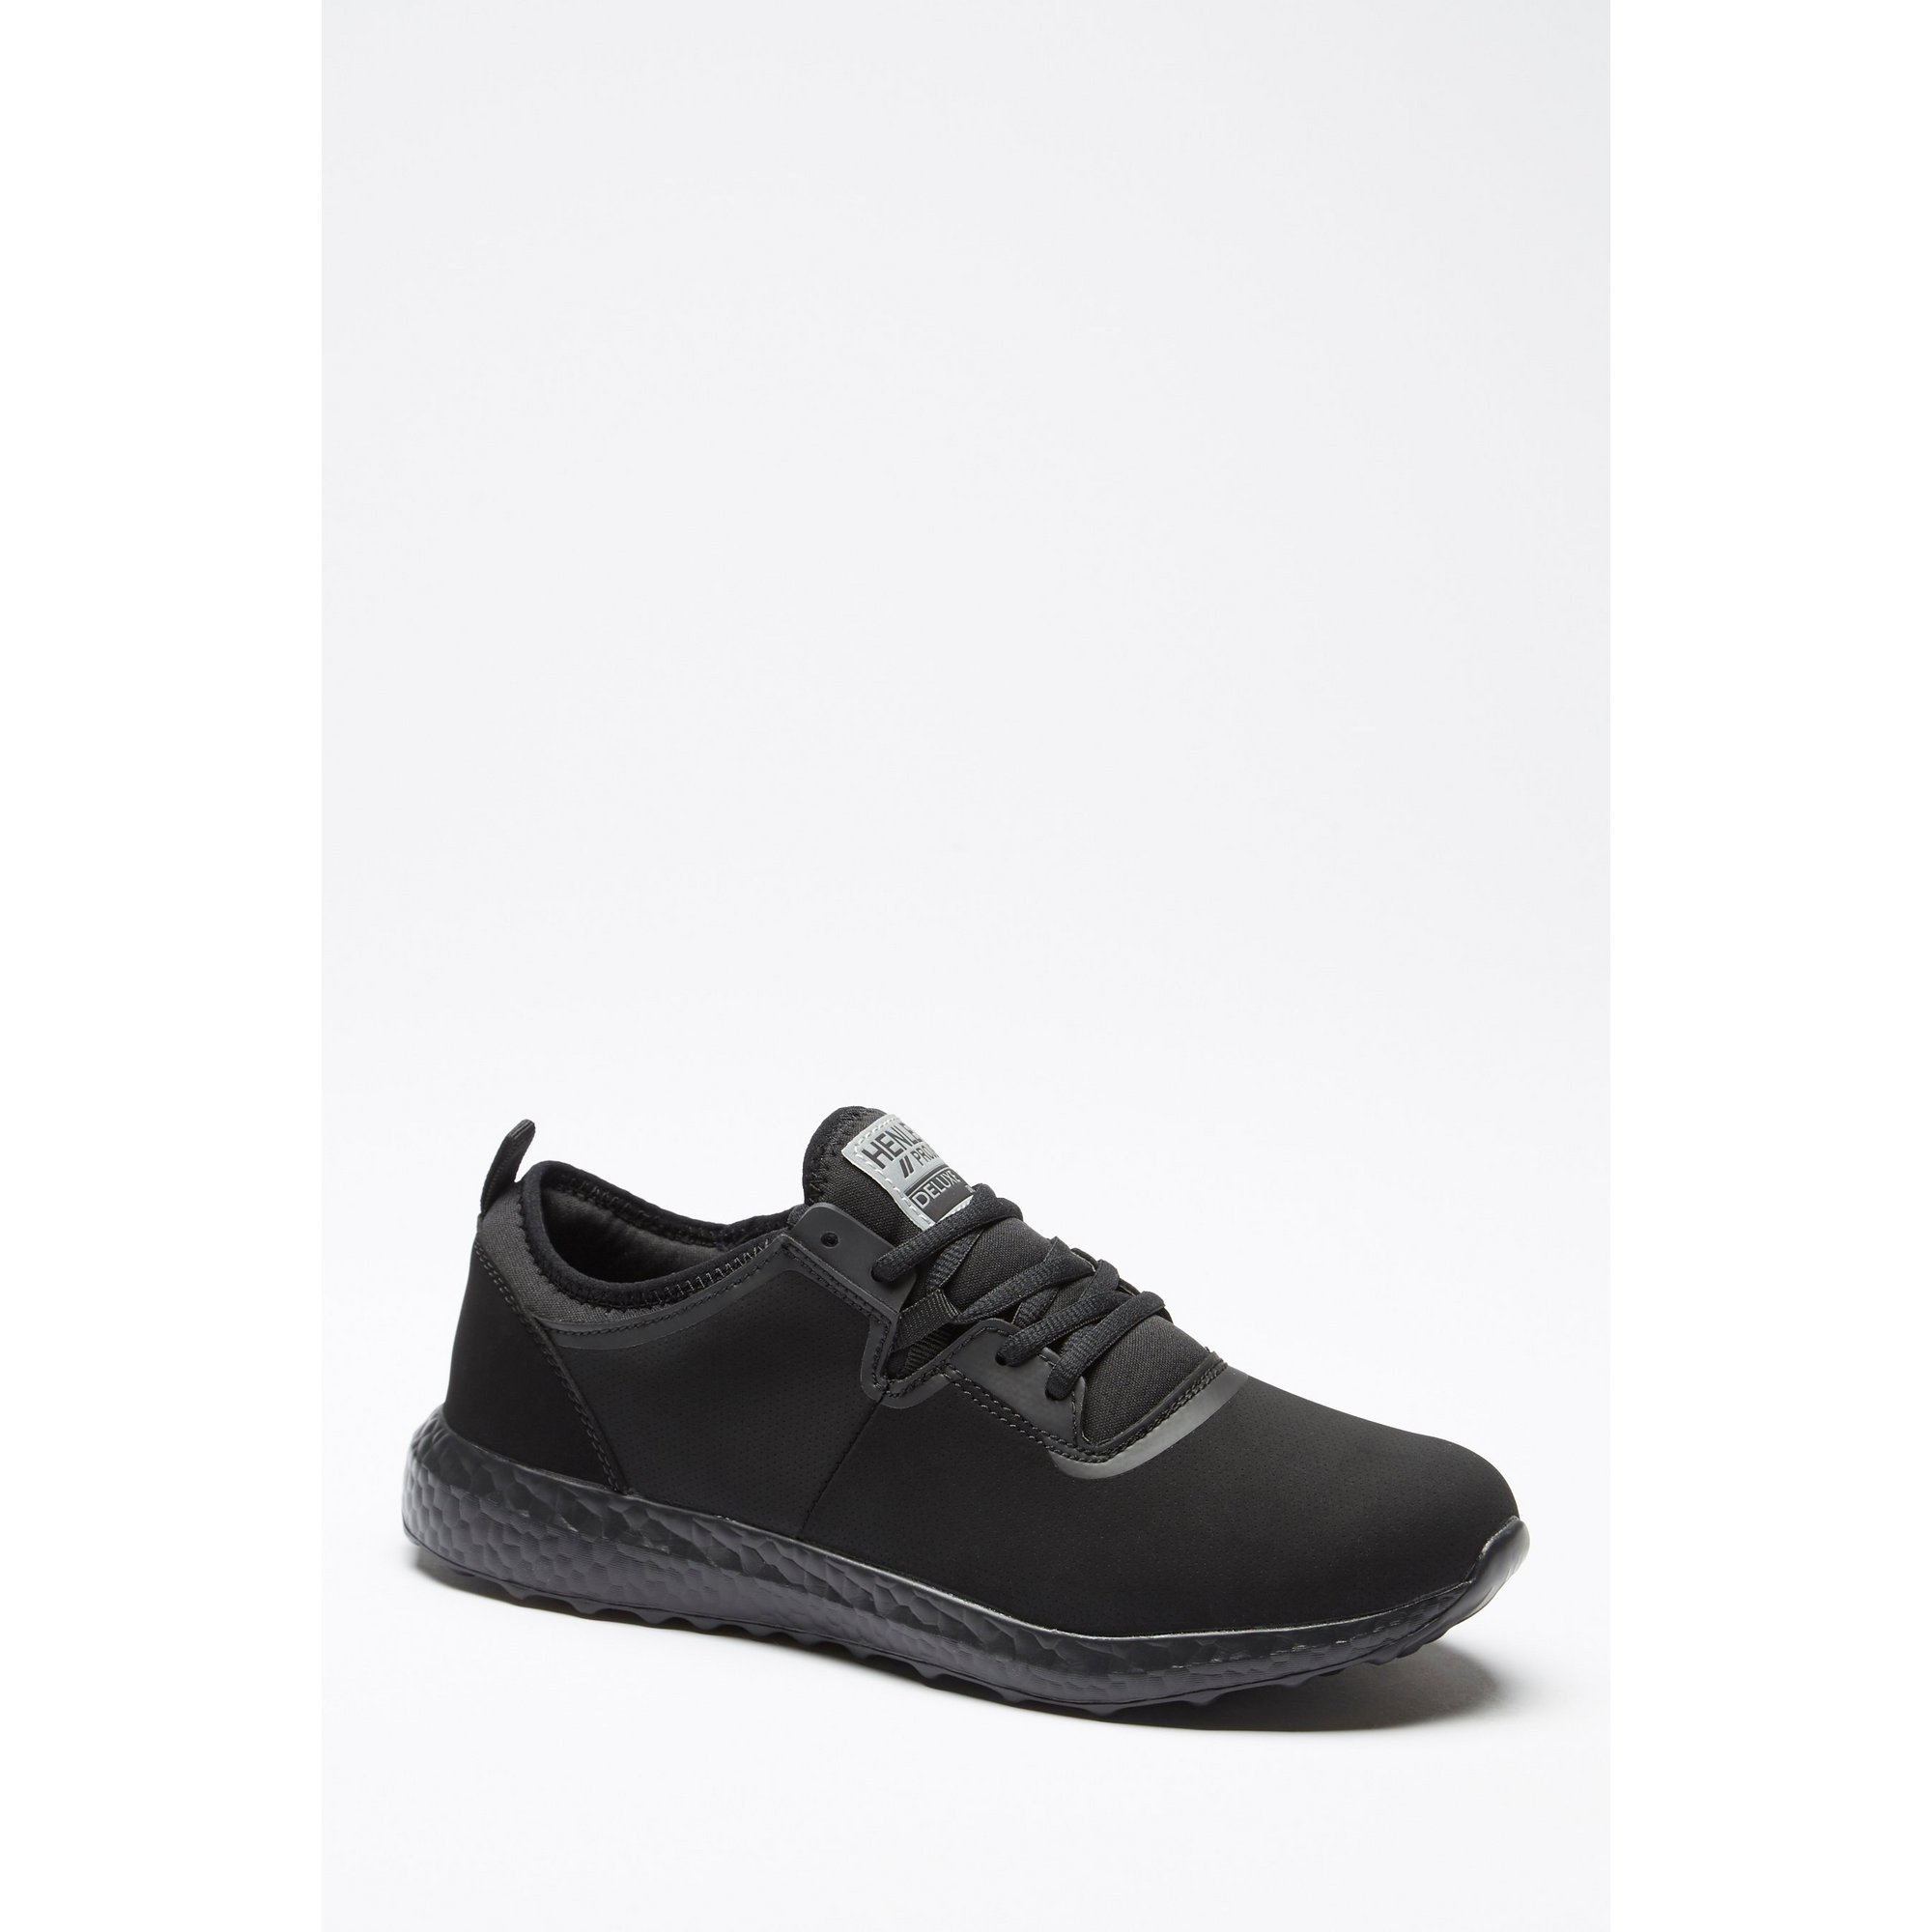 Image of Henleys HX350 Trainers